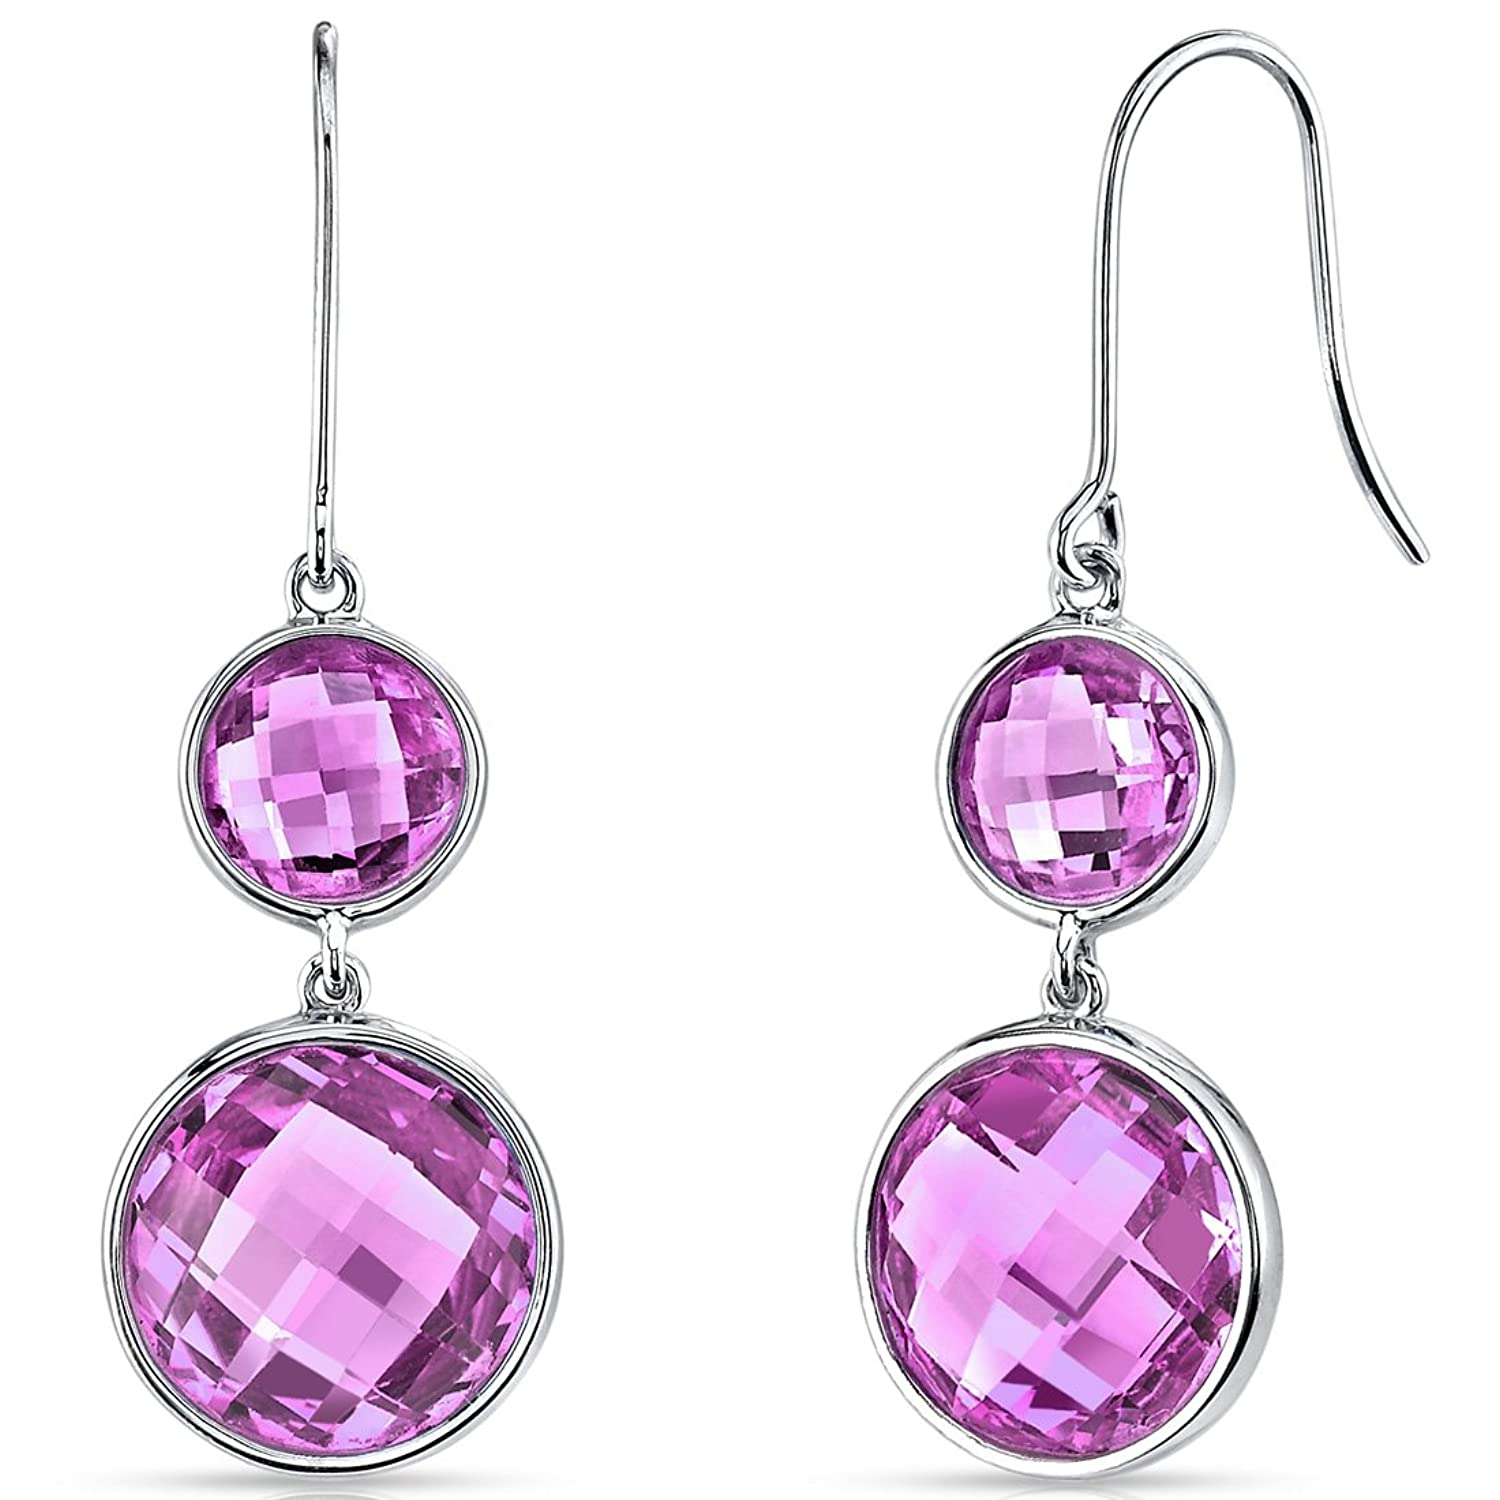 14 Karat White Gold Double Checkerboard 17.75 Carats Created Pink Sapphire Dangle Earrings